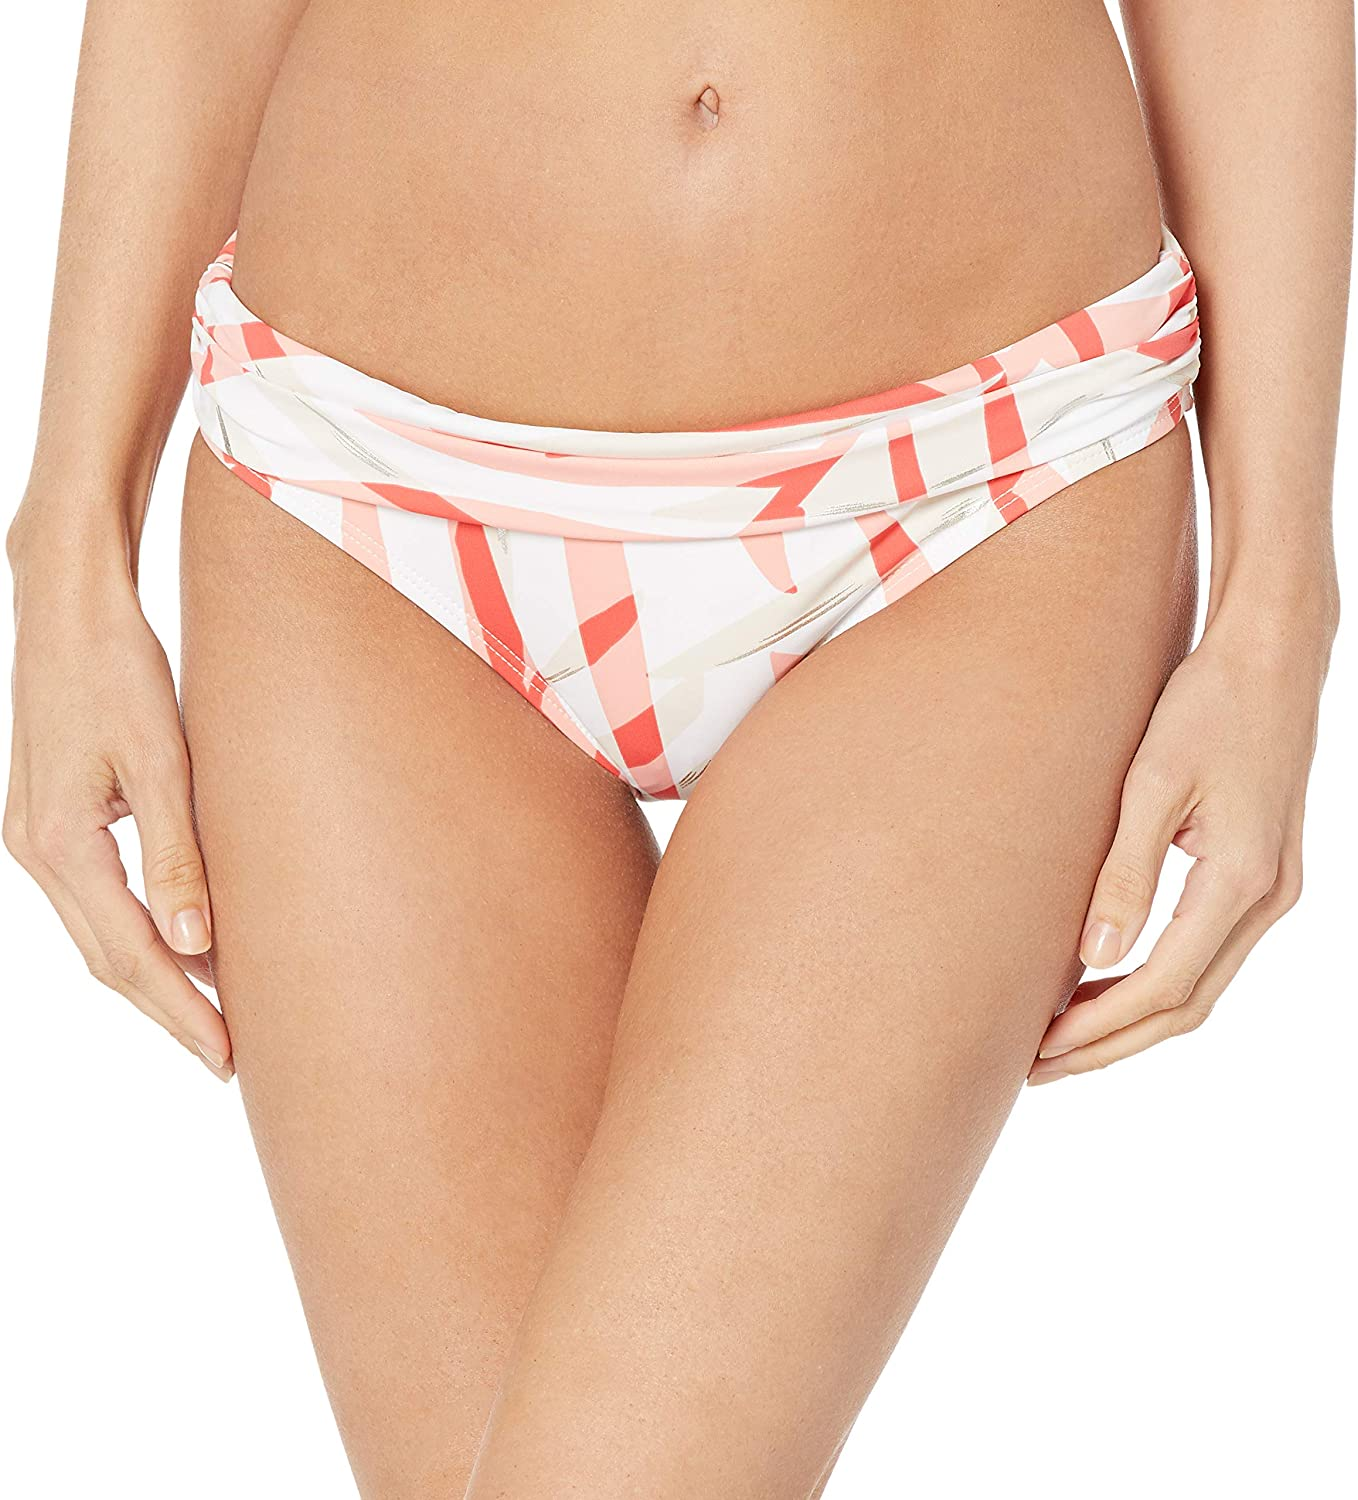 La Animer and price revision Blanca At the price of surprise Women's Shirred Band Bottom Bikini Swimsuit Hipster